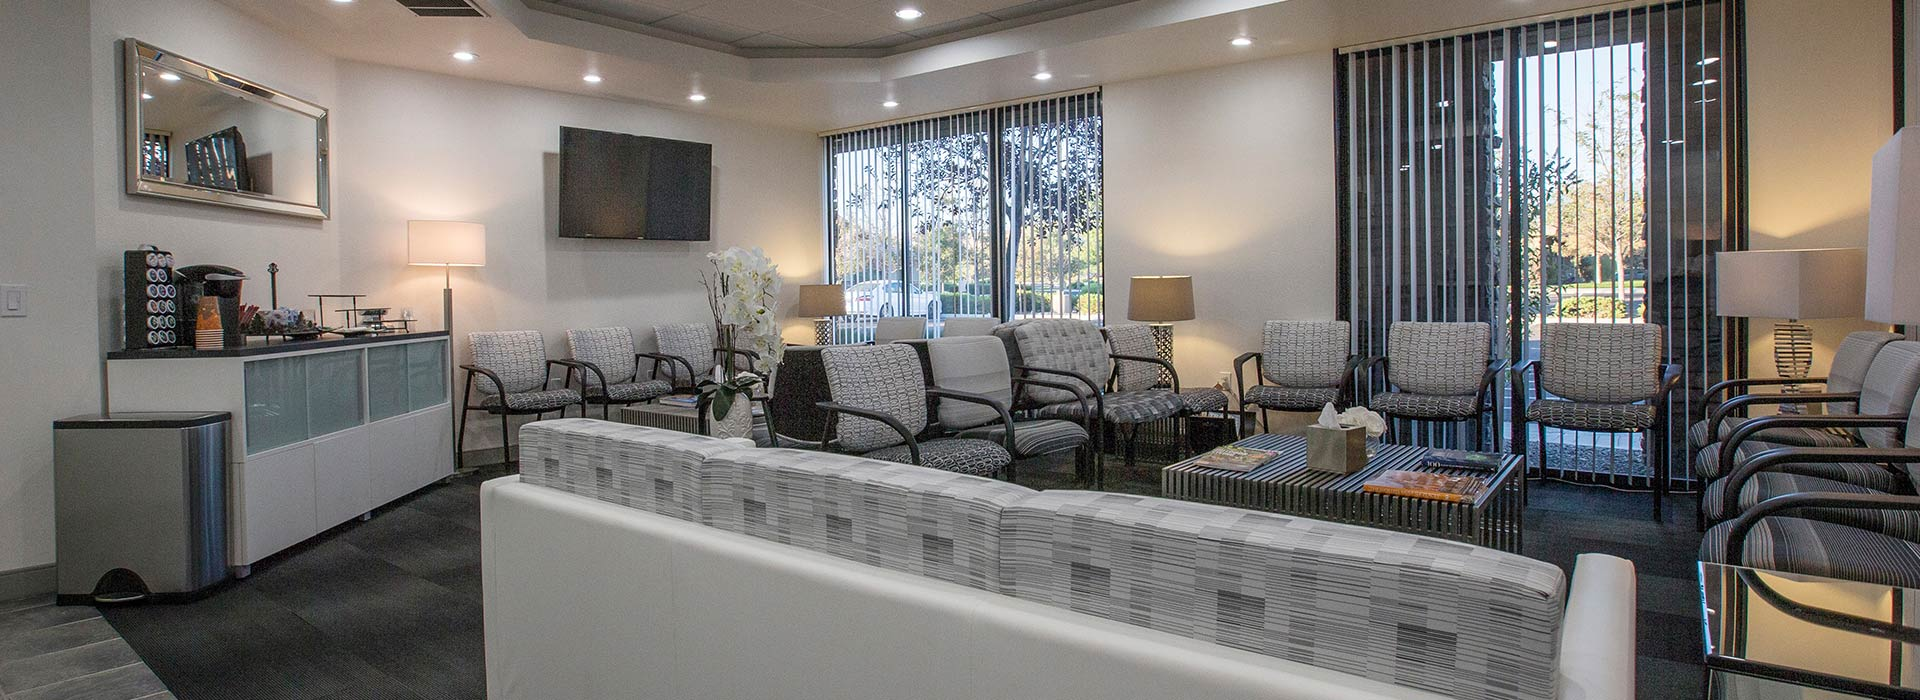 Pain management, vein disease, vein disorder, ambulatory surgery center, reno, sparks, carson city